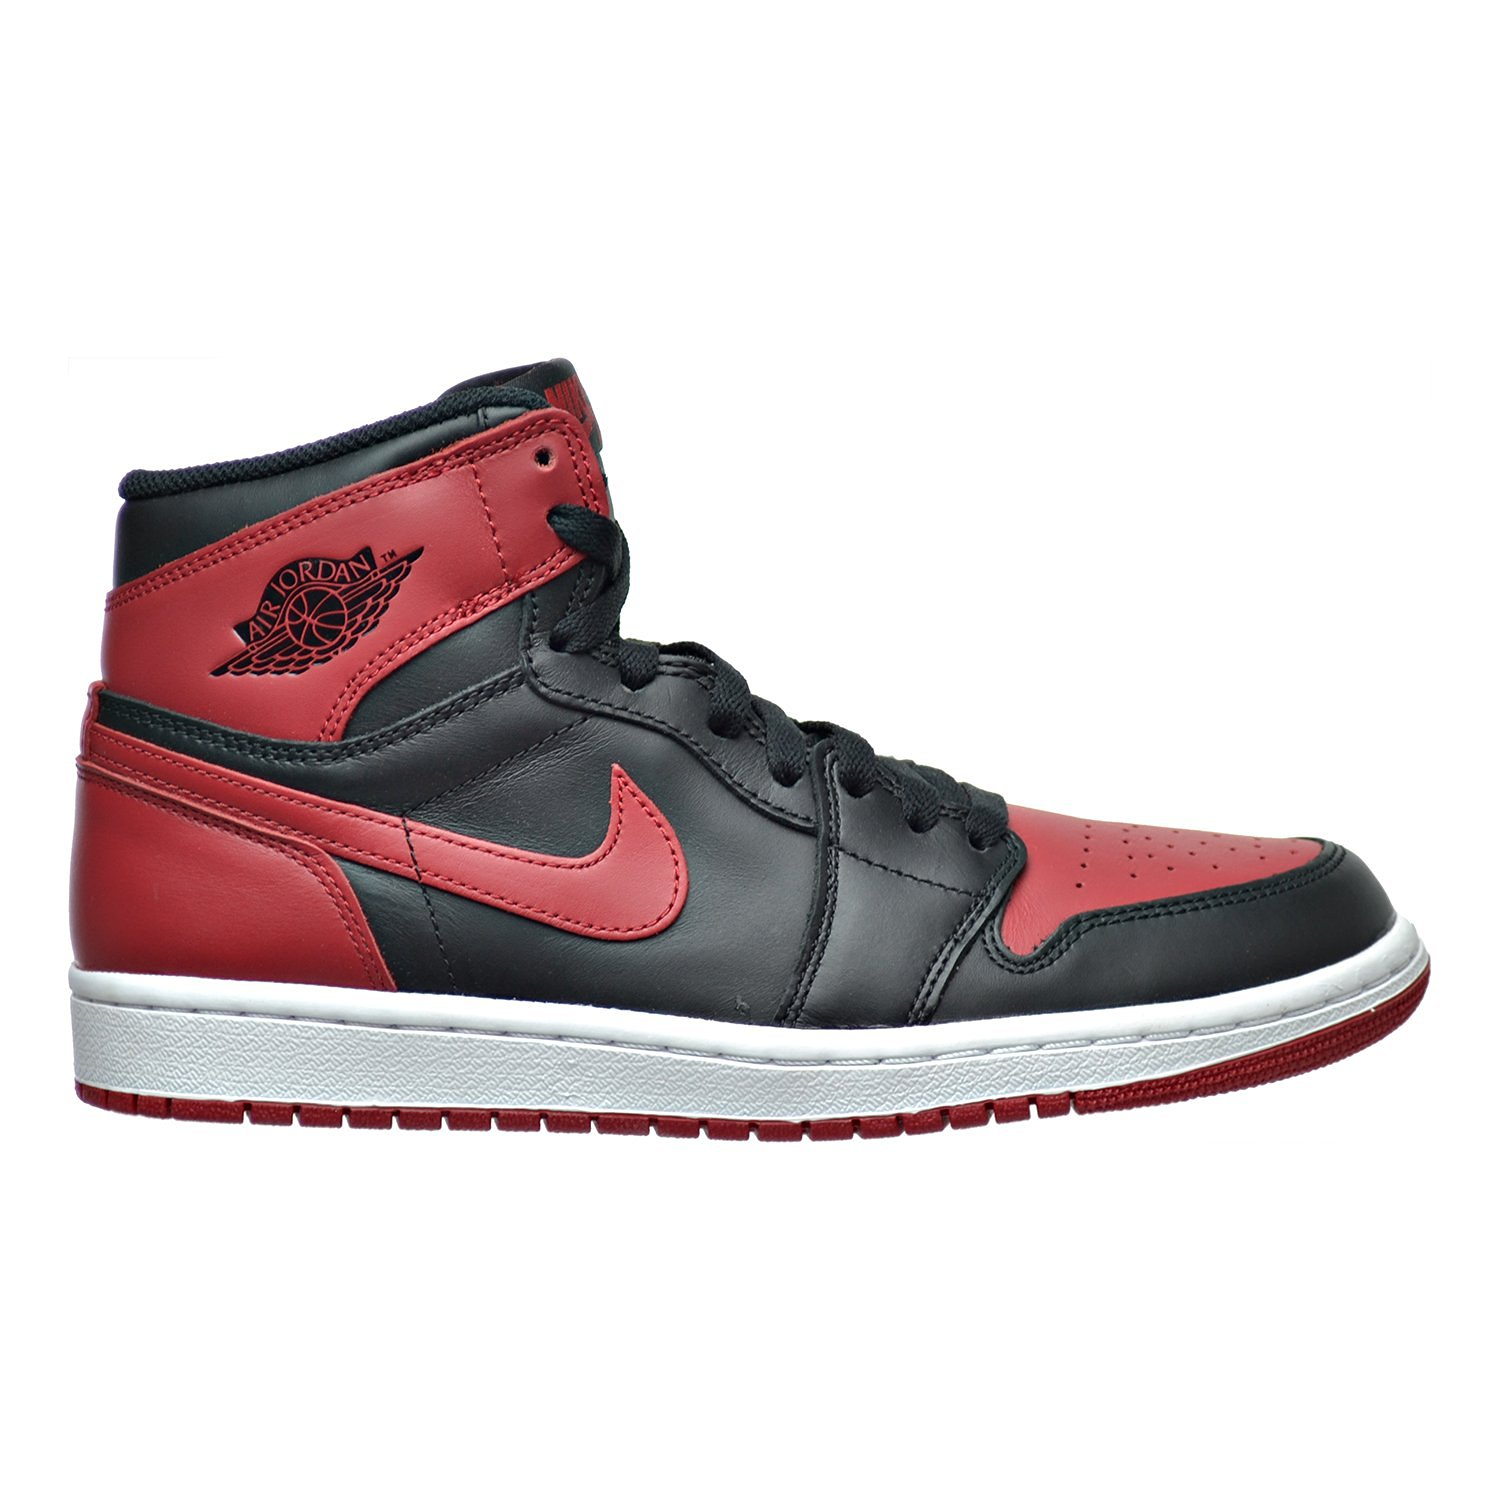 "Nike Mens Air Jordan 1 Retro High OG ""Bred"" Leather Basketball Shoes"